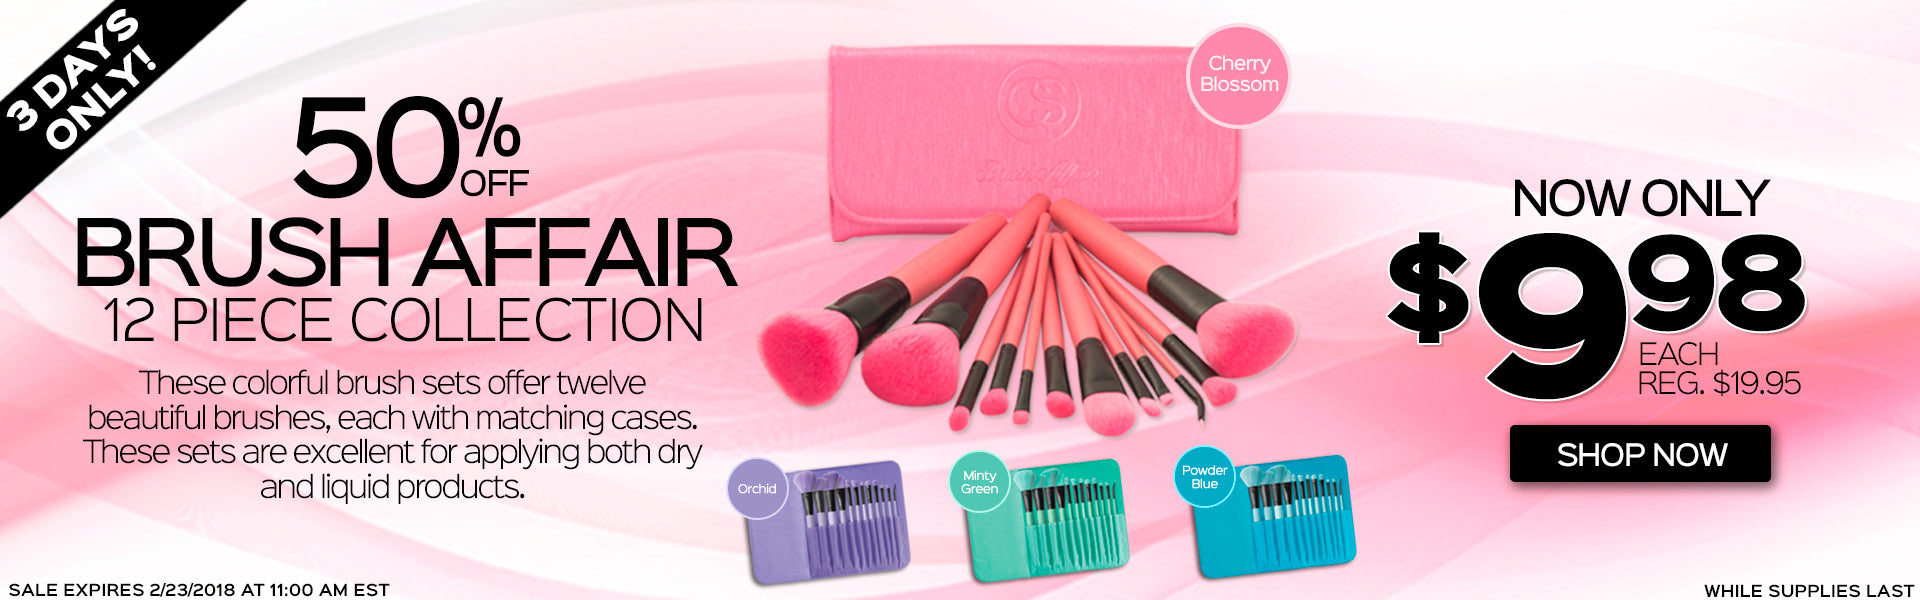 50% Off Brush Affair 12 Piece Collection. Now Only $9.98 each, Reg. $19.95